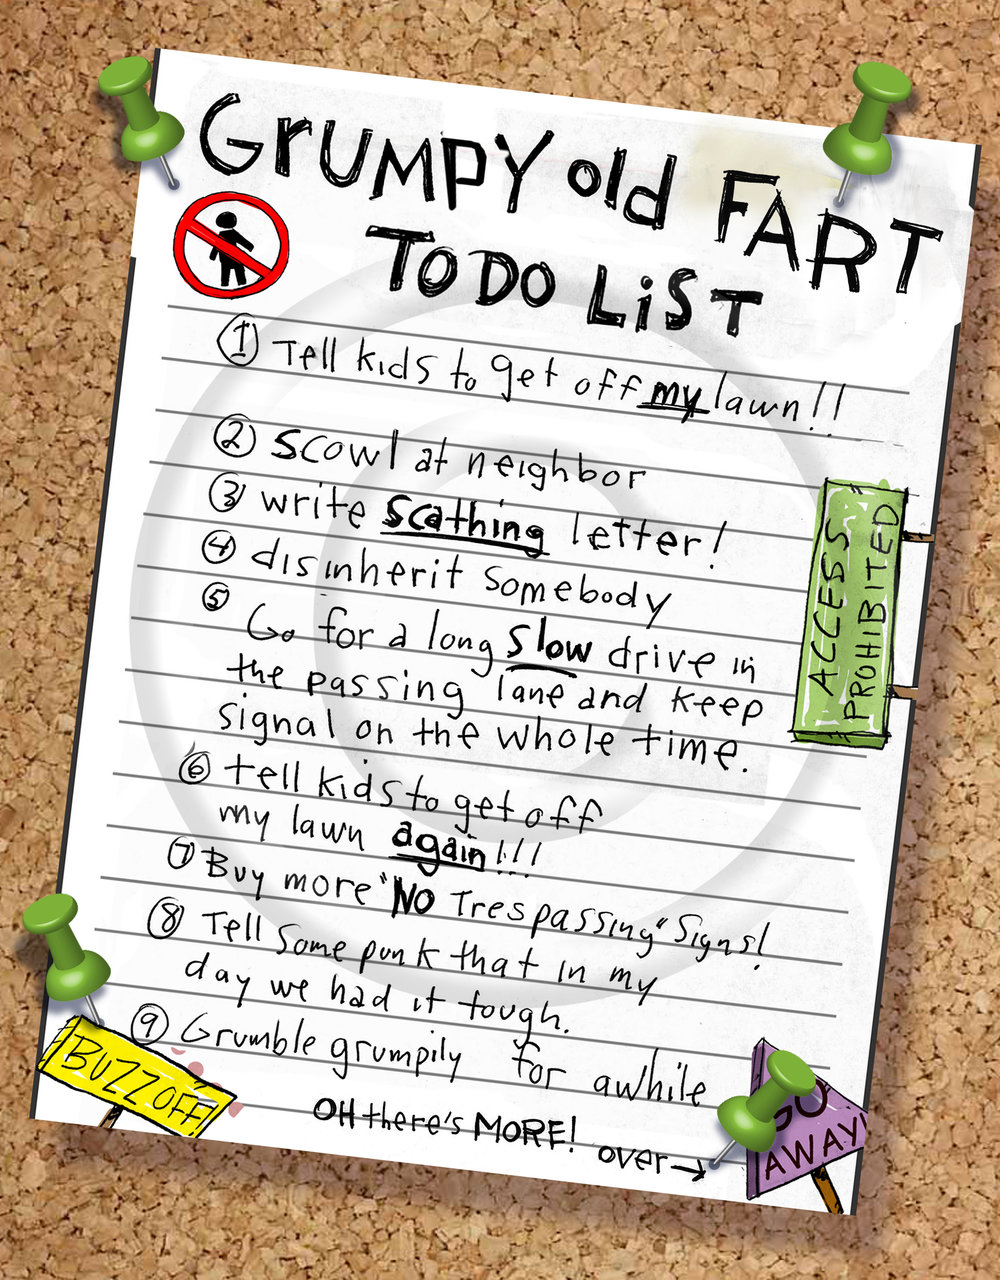 Grumpy Old Fart To-Do List.